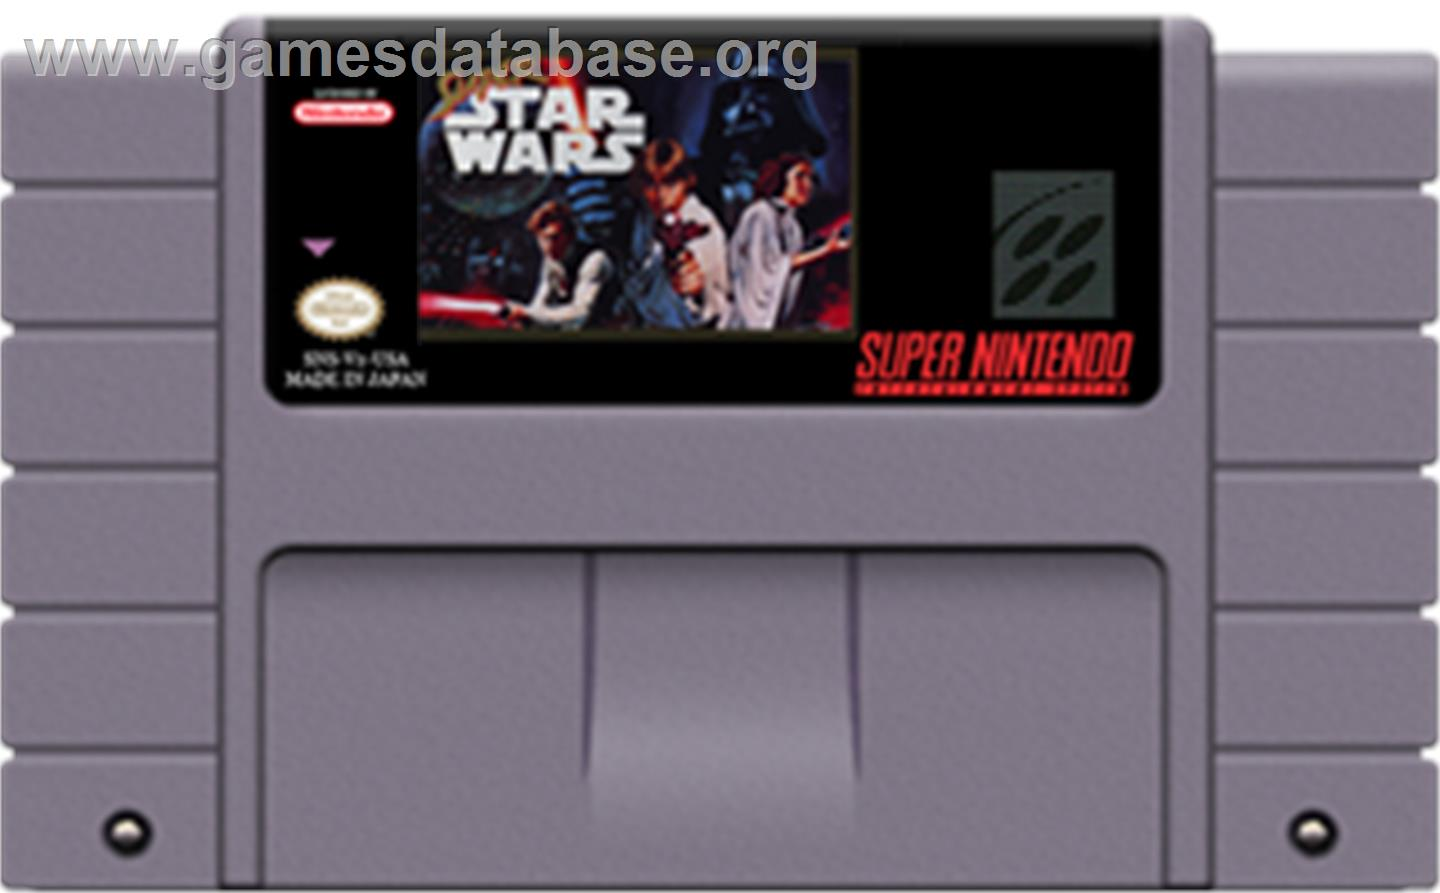 Super Star Wars - Nintendo SNES - Artwork - Cartridge